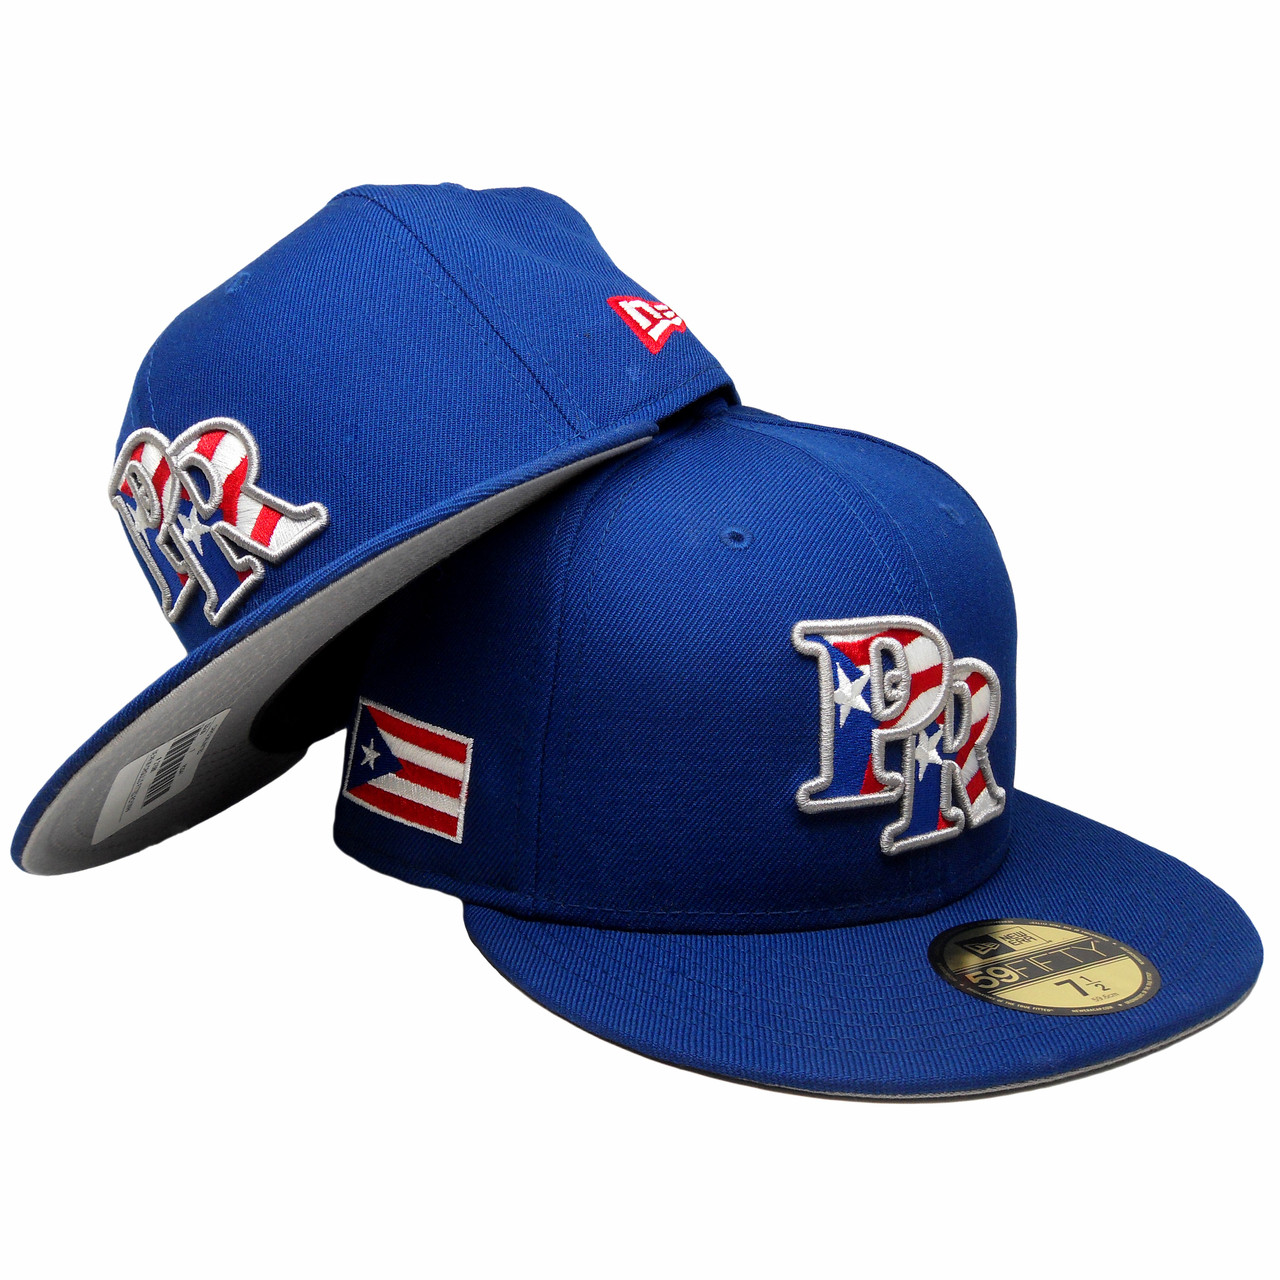 new products d8f84 2301d Puerto Rico New Era 59Fifty Custom Fitted Hat - Royal, White, Red -  ECapsUnlimited.com